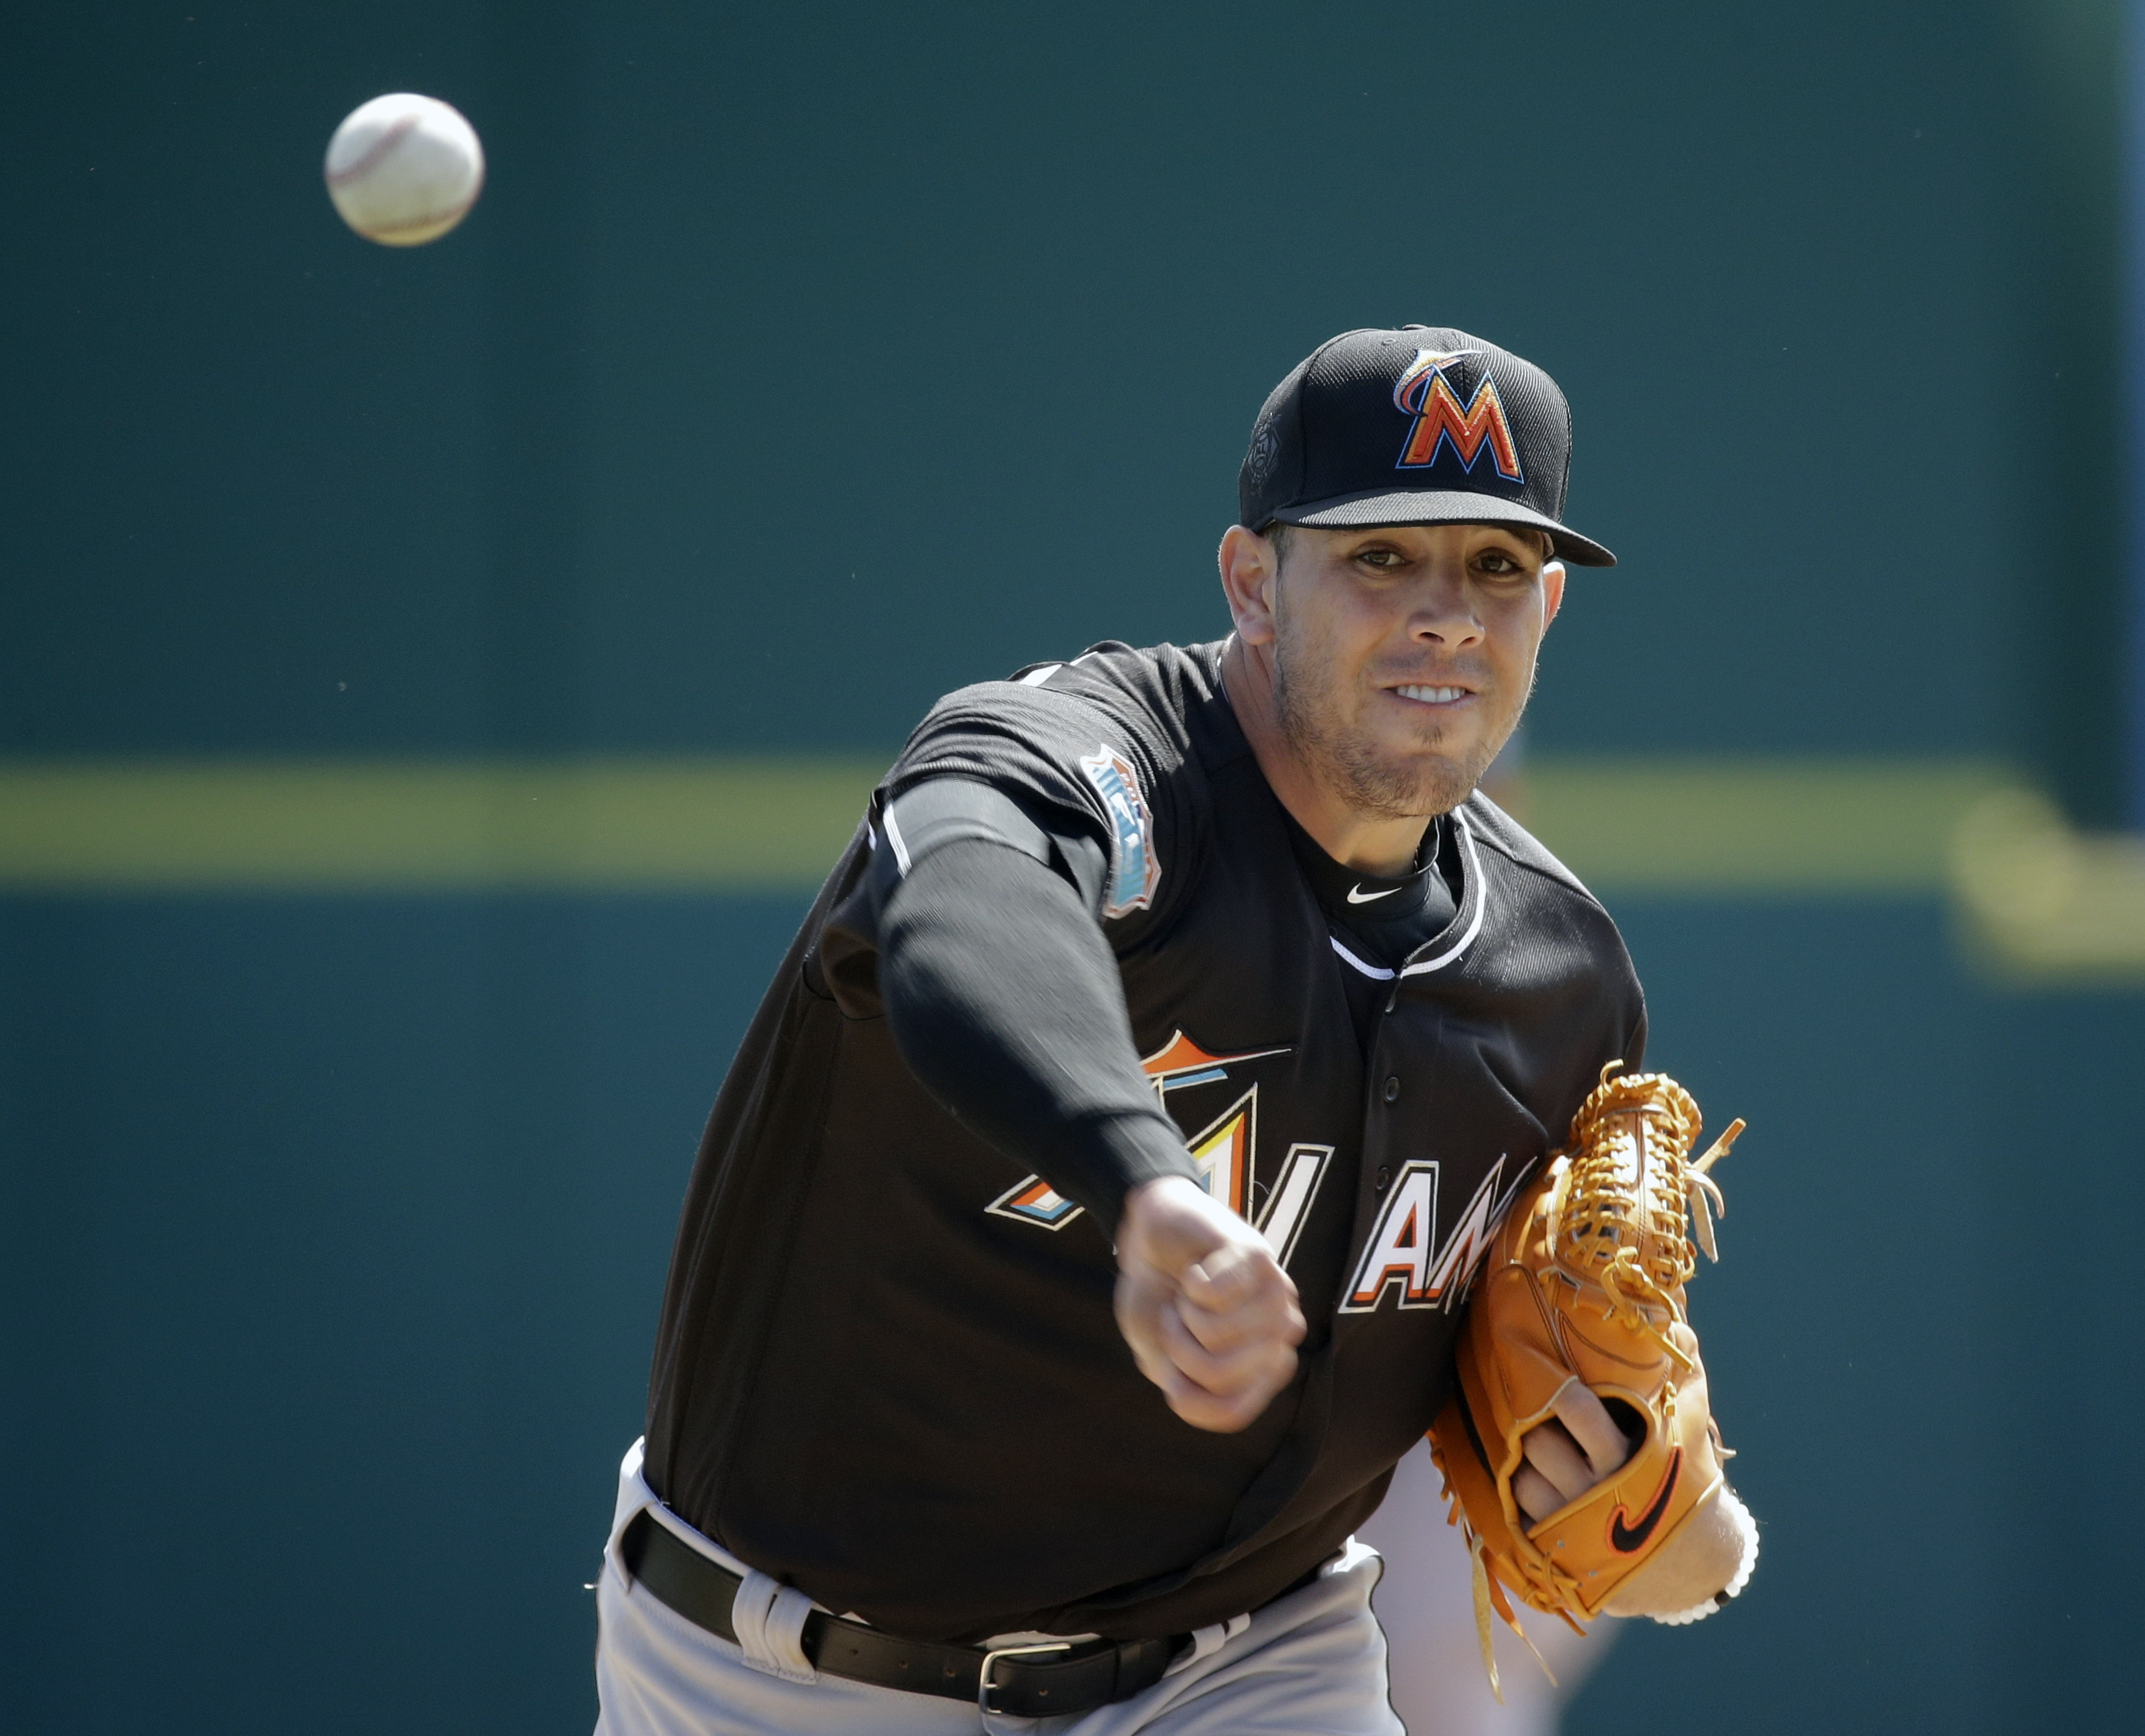 Miami Marlins starting pitcher Jose Fernandez throws in the first inning of a spring training baseball game against the Washington Nationals, Monday, March 7, 2016, in Viera, Fla. (AP Photo/John Raoux)